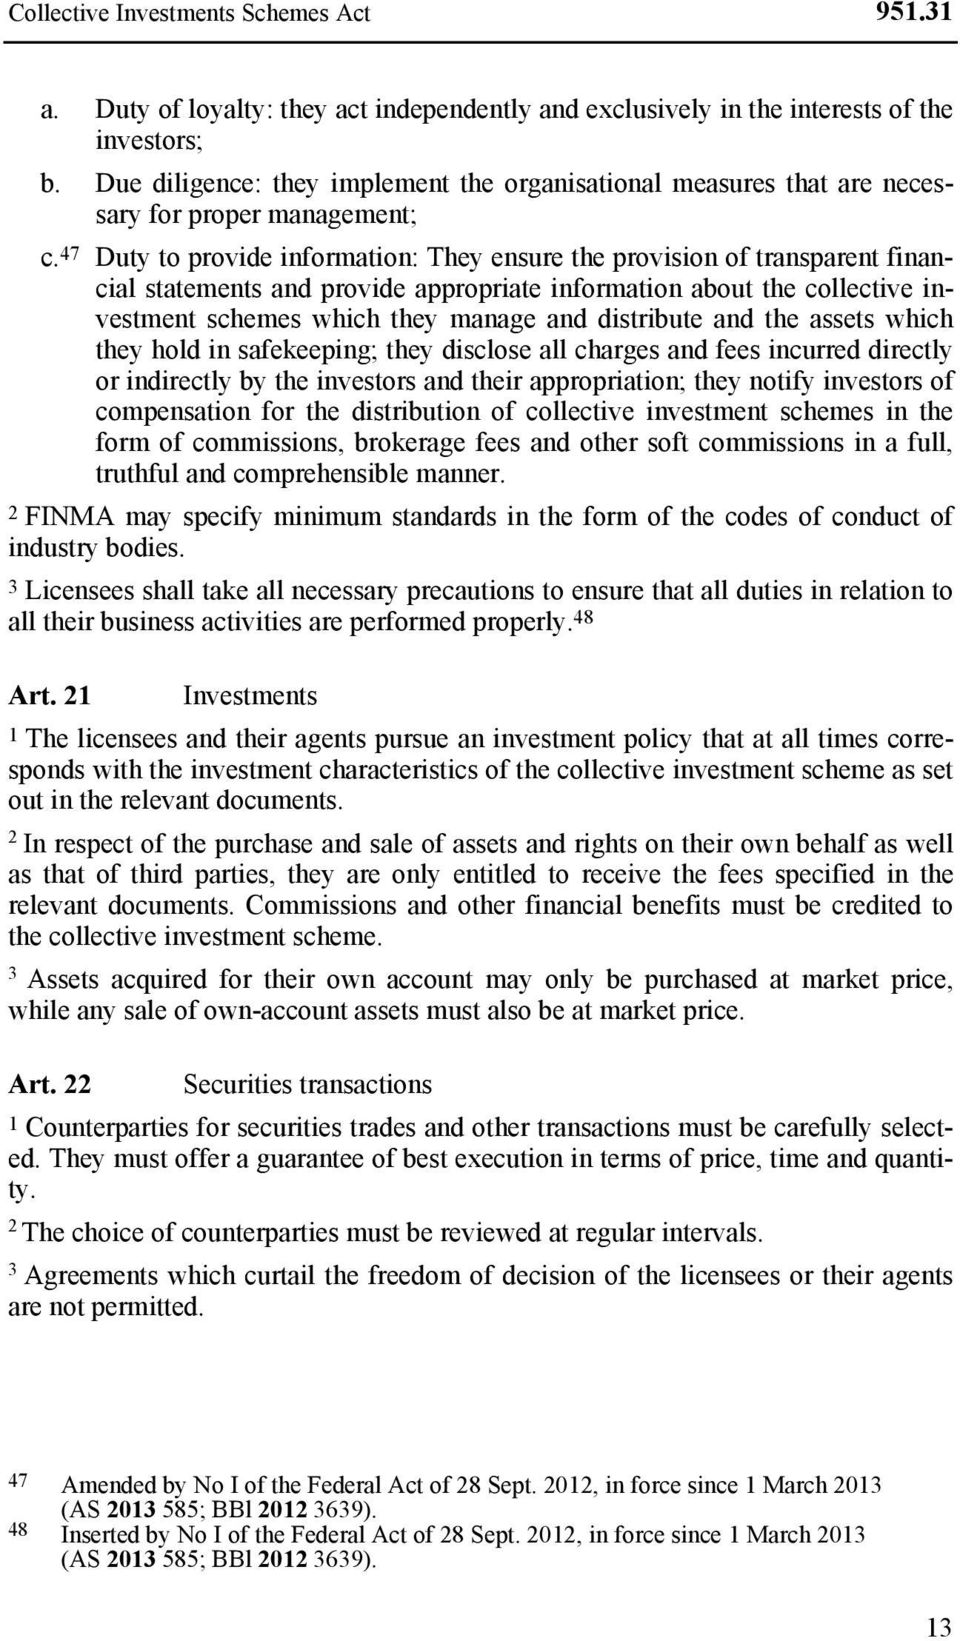 47 Duty to provide information: They ensure the provision of transparent financial statements and provide appropriate information about the collective investment schemes which they manage and